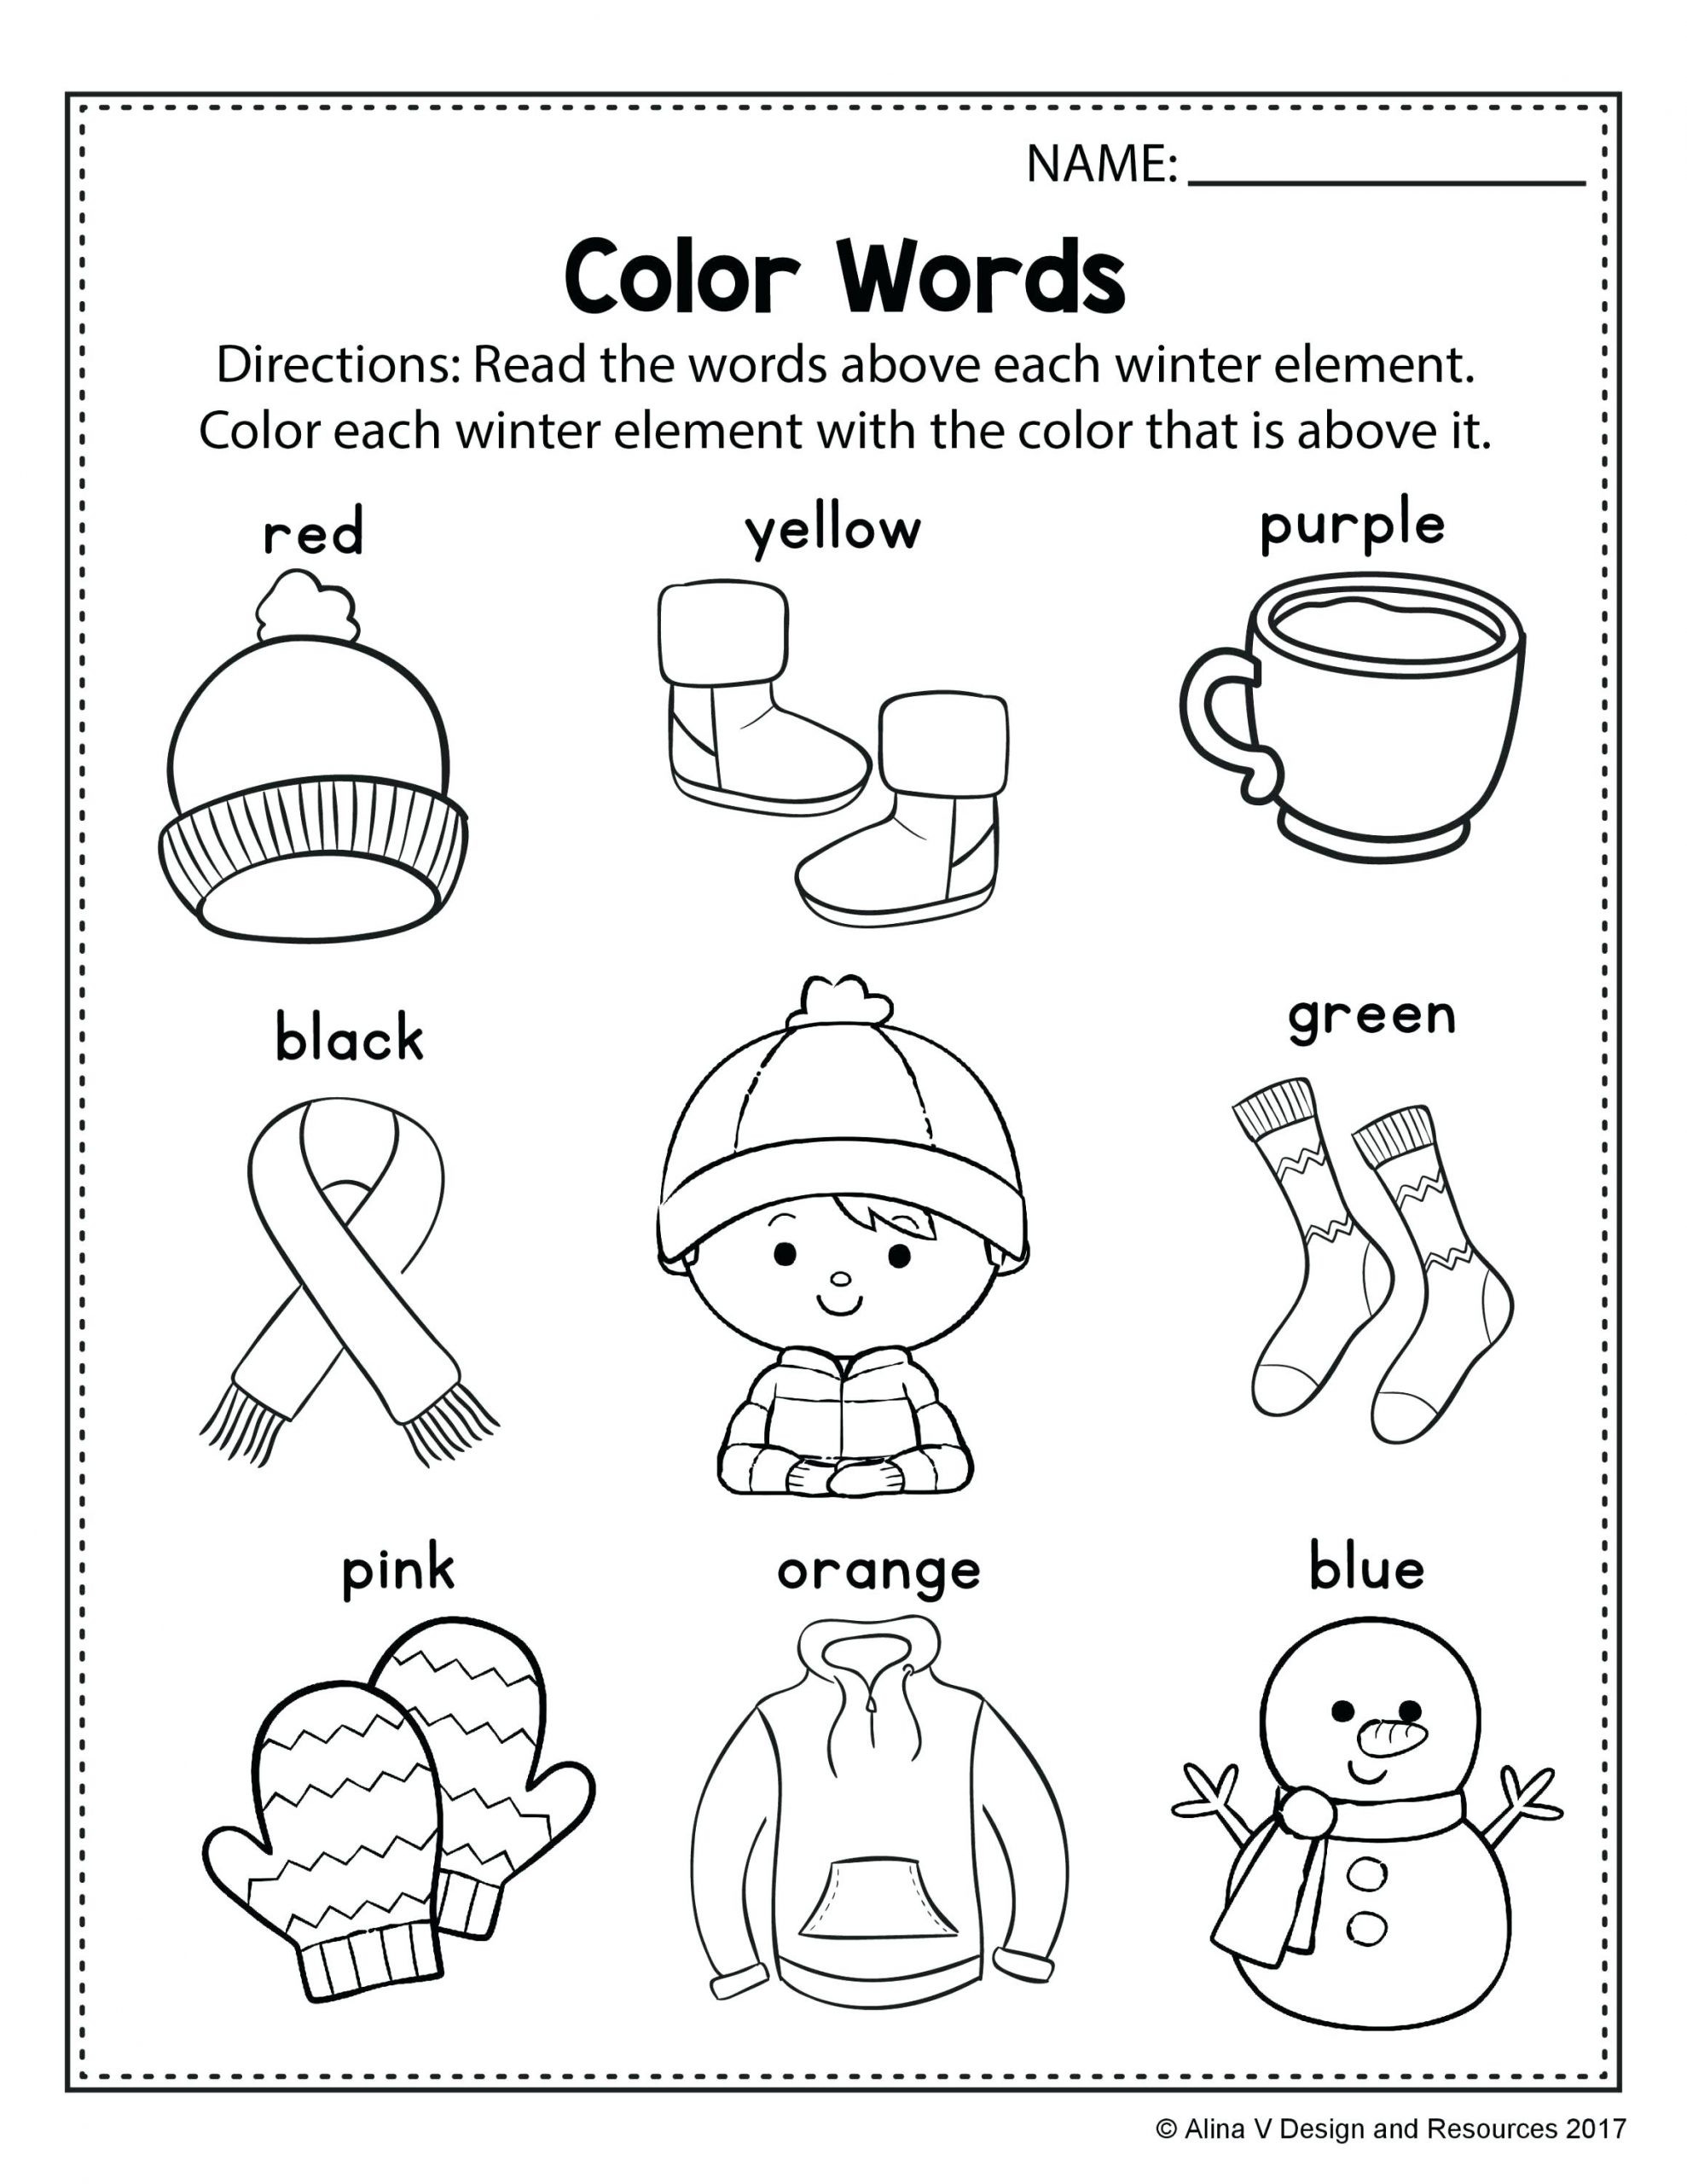 Weather Worksheets for First Graders Best Coloring Spring Weather Pages for Kids with Winter